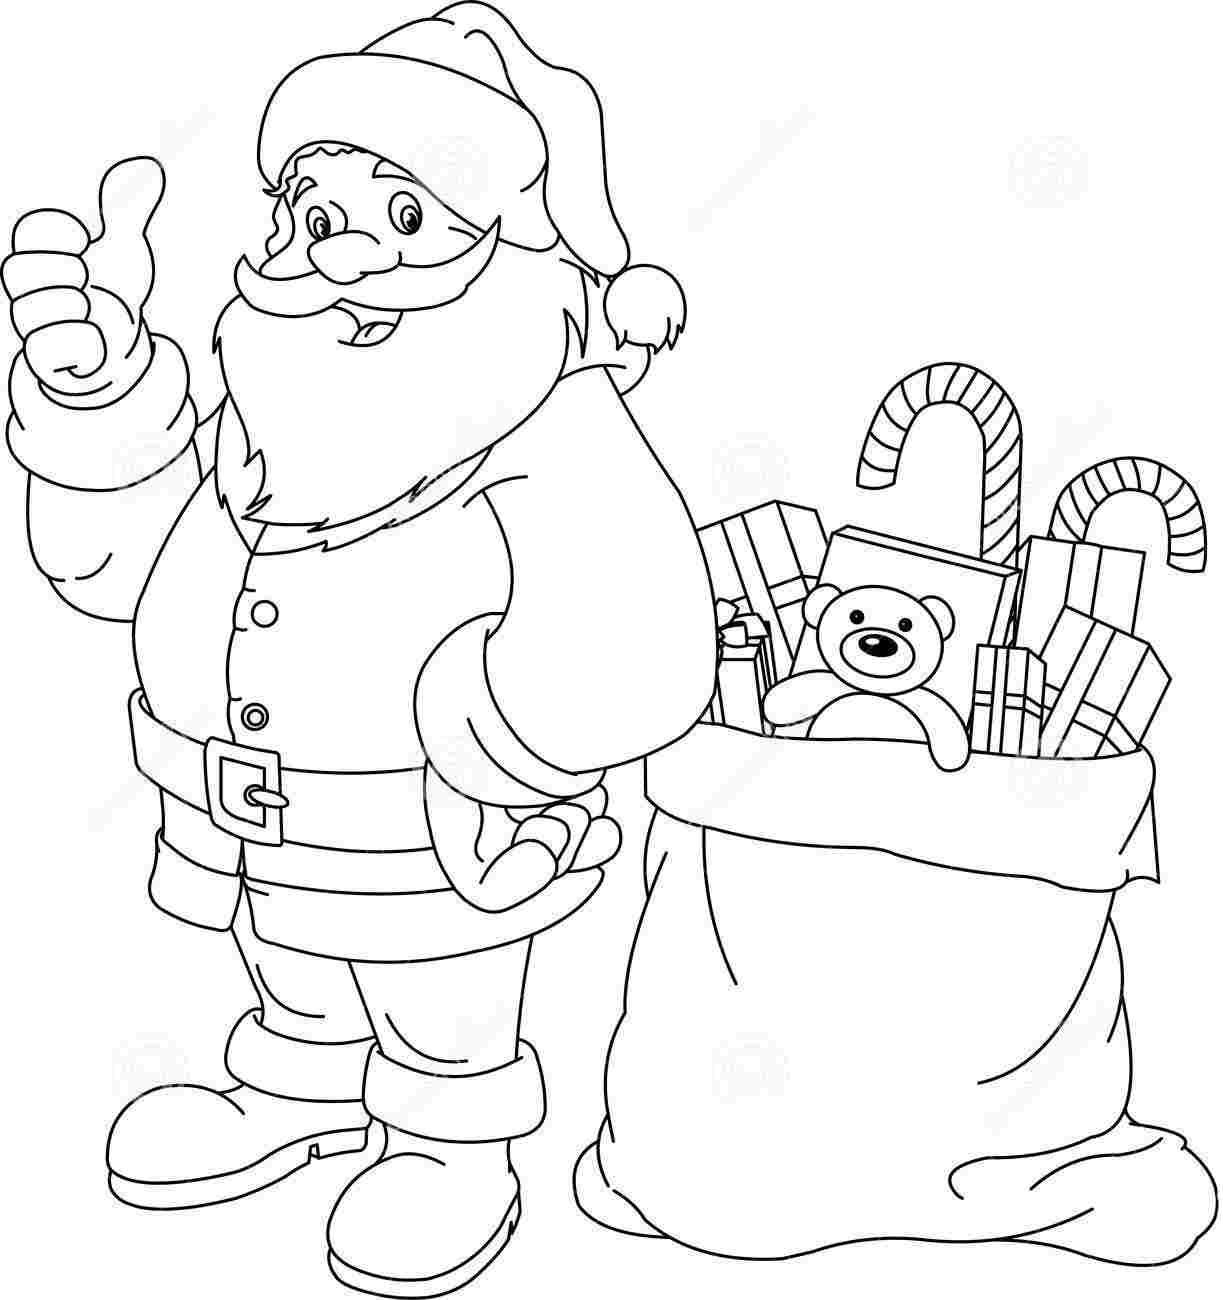 santa claus house coloring pages - photo#12